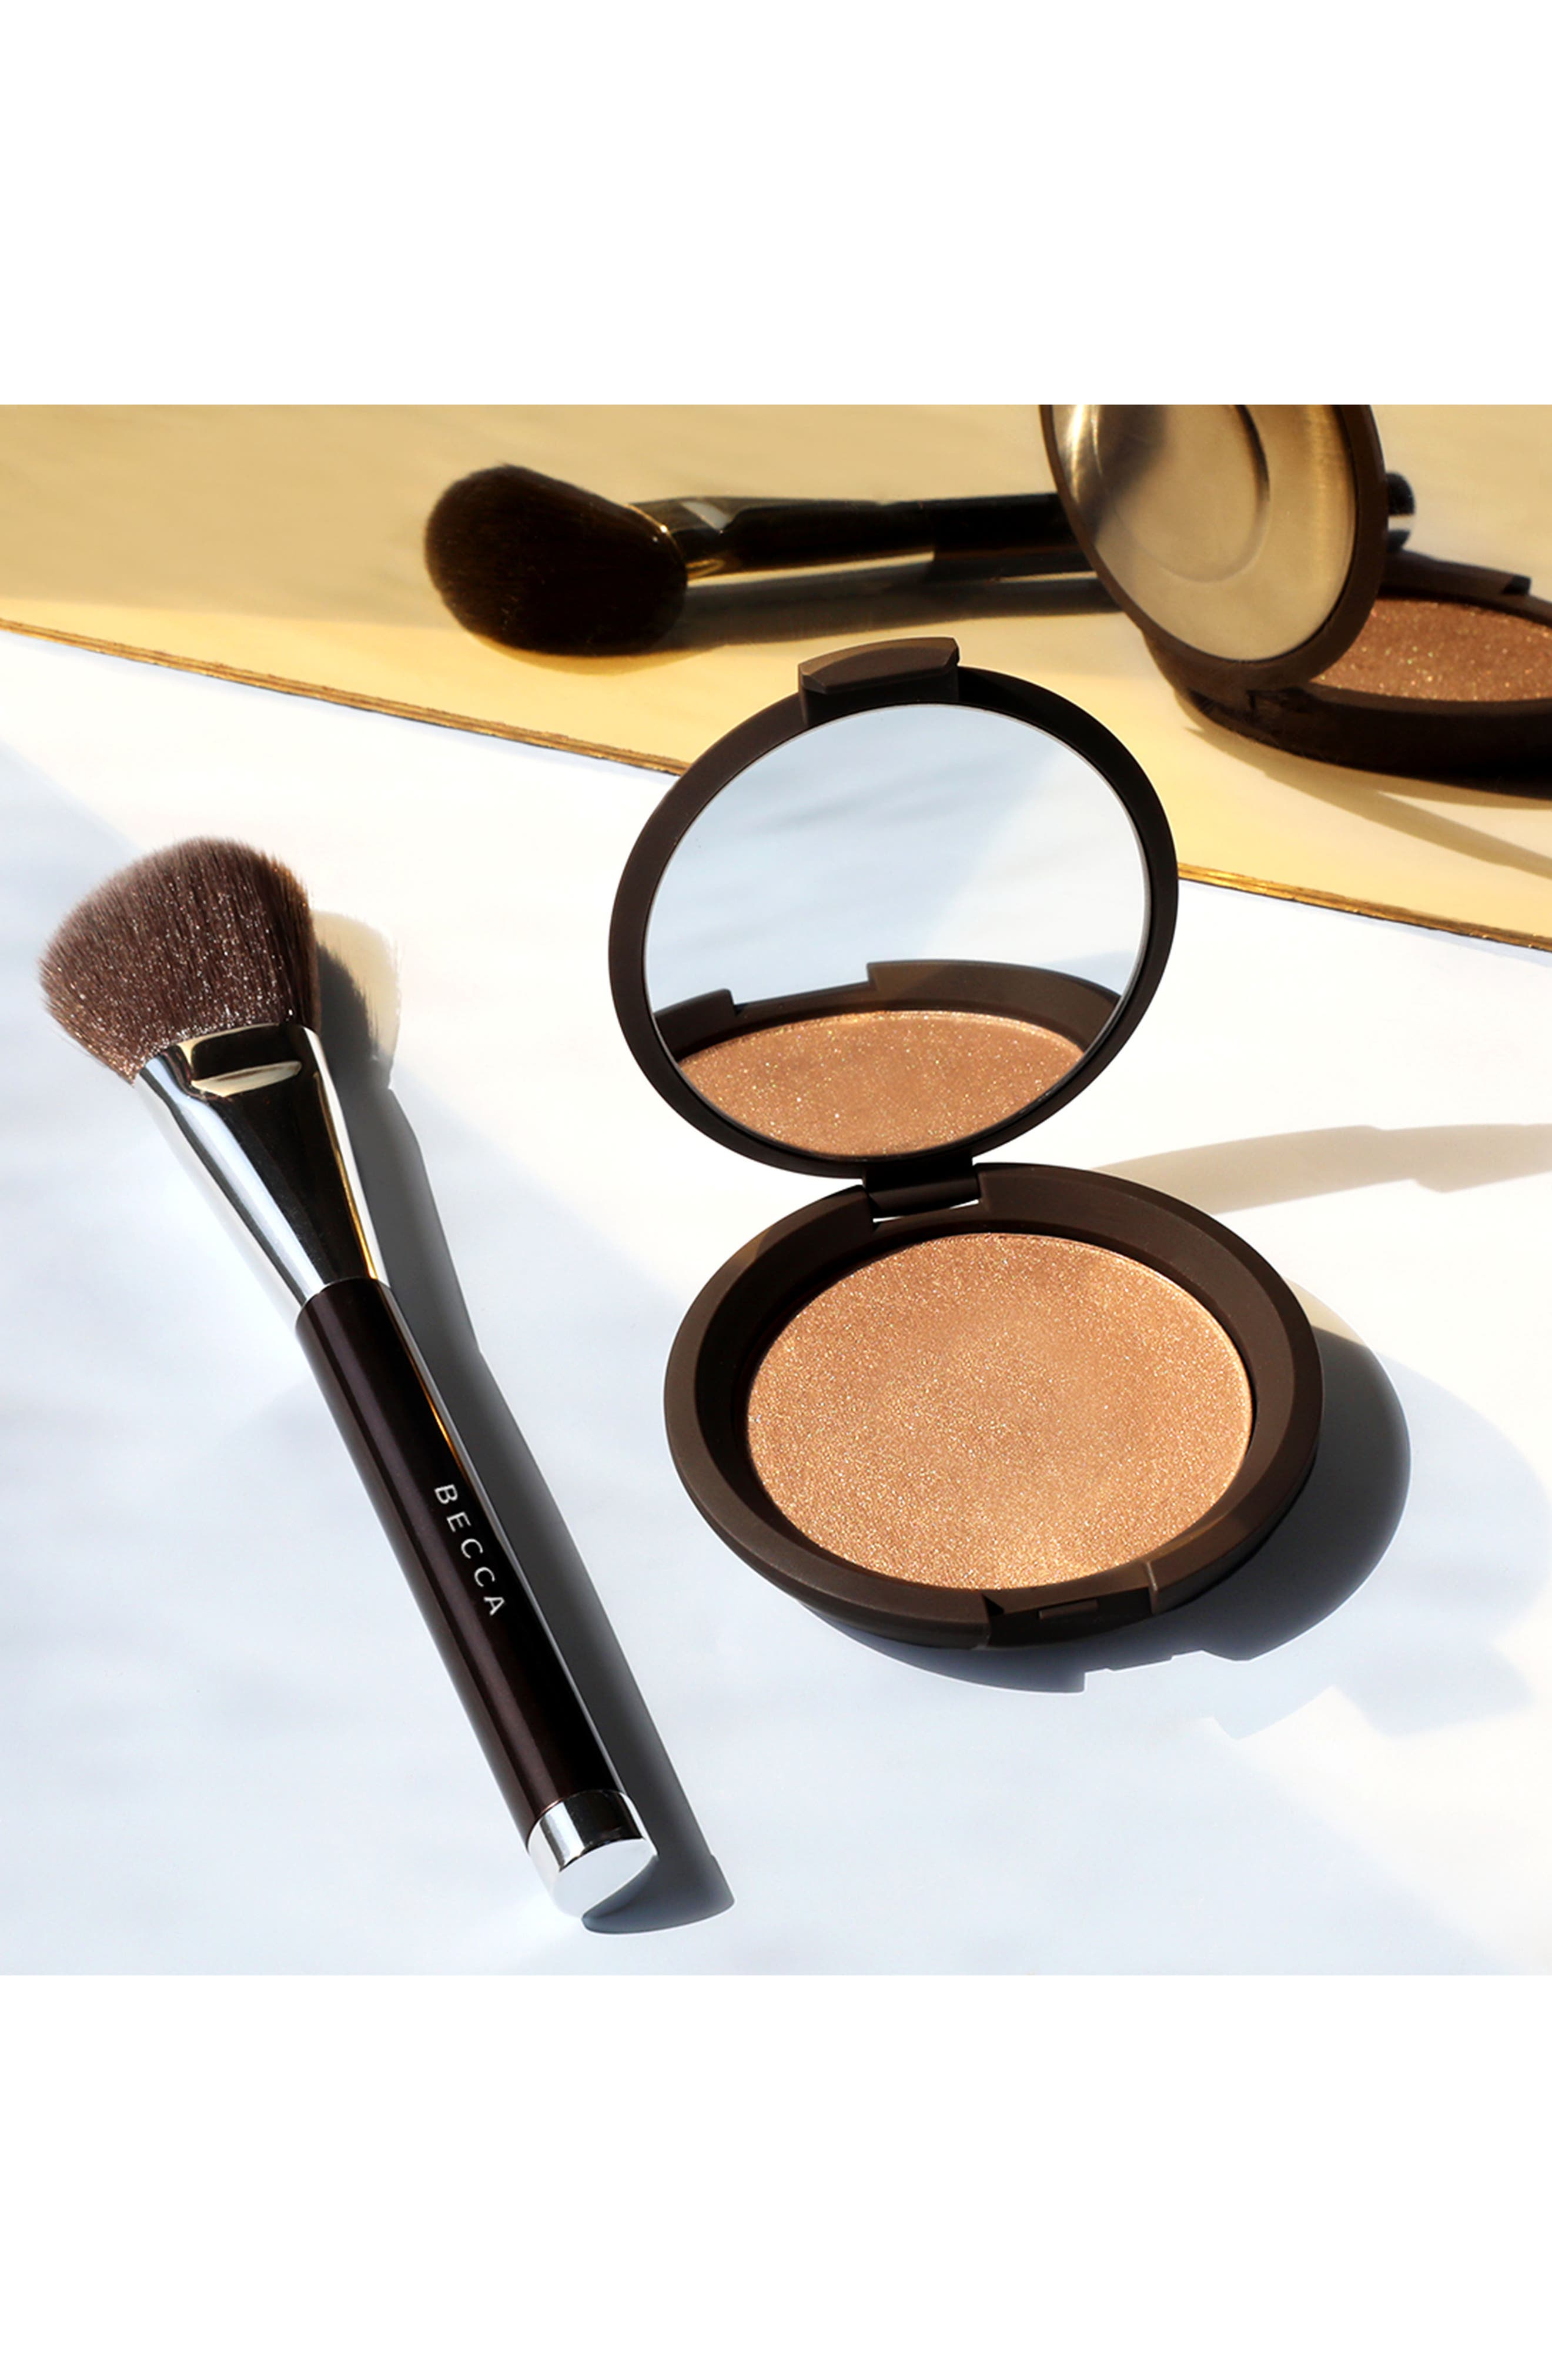 BECCA COSMETICS,                             BECCA Angled Highlighter Brush,                             Alternate thumbnail 2, color,                             NO COLOR